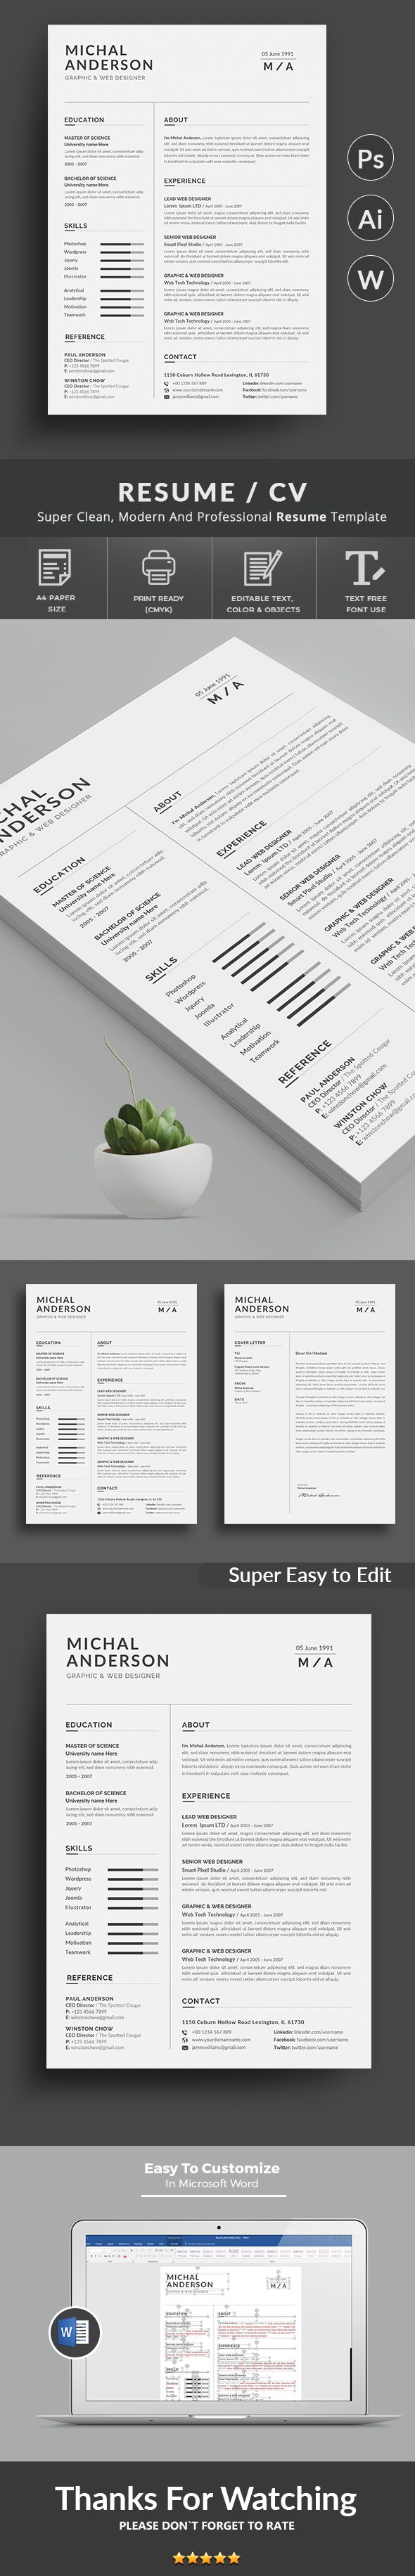 """This is Resume Templates . """"Resume Templates"""" is the super clean,The flexible page designs are easy to use and customise, modern and professional Resume templates to help you land that great job, you a need a great resume. The professionally-written resume examples below can help give you the inspiration you need to build an impressive resume of your own that impresses hiring managers and helps you land the job."""